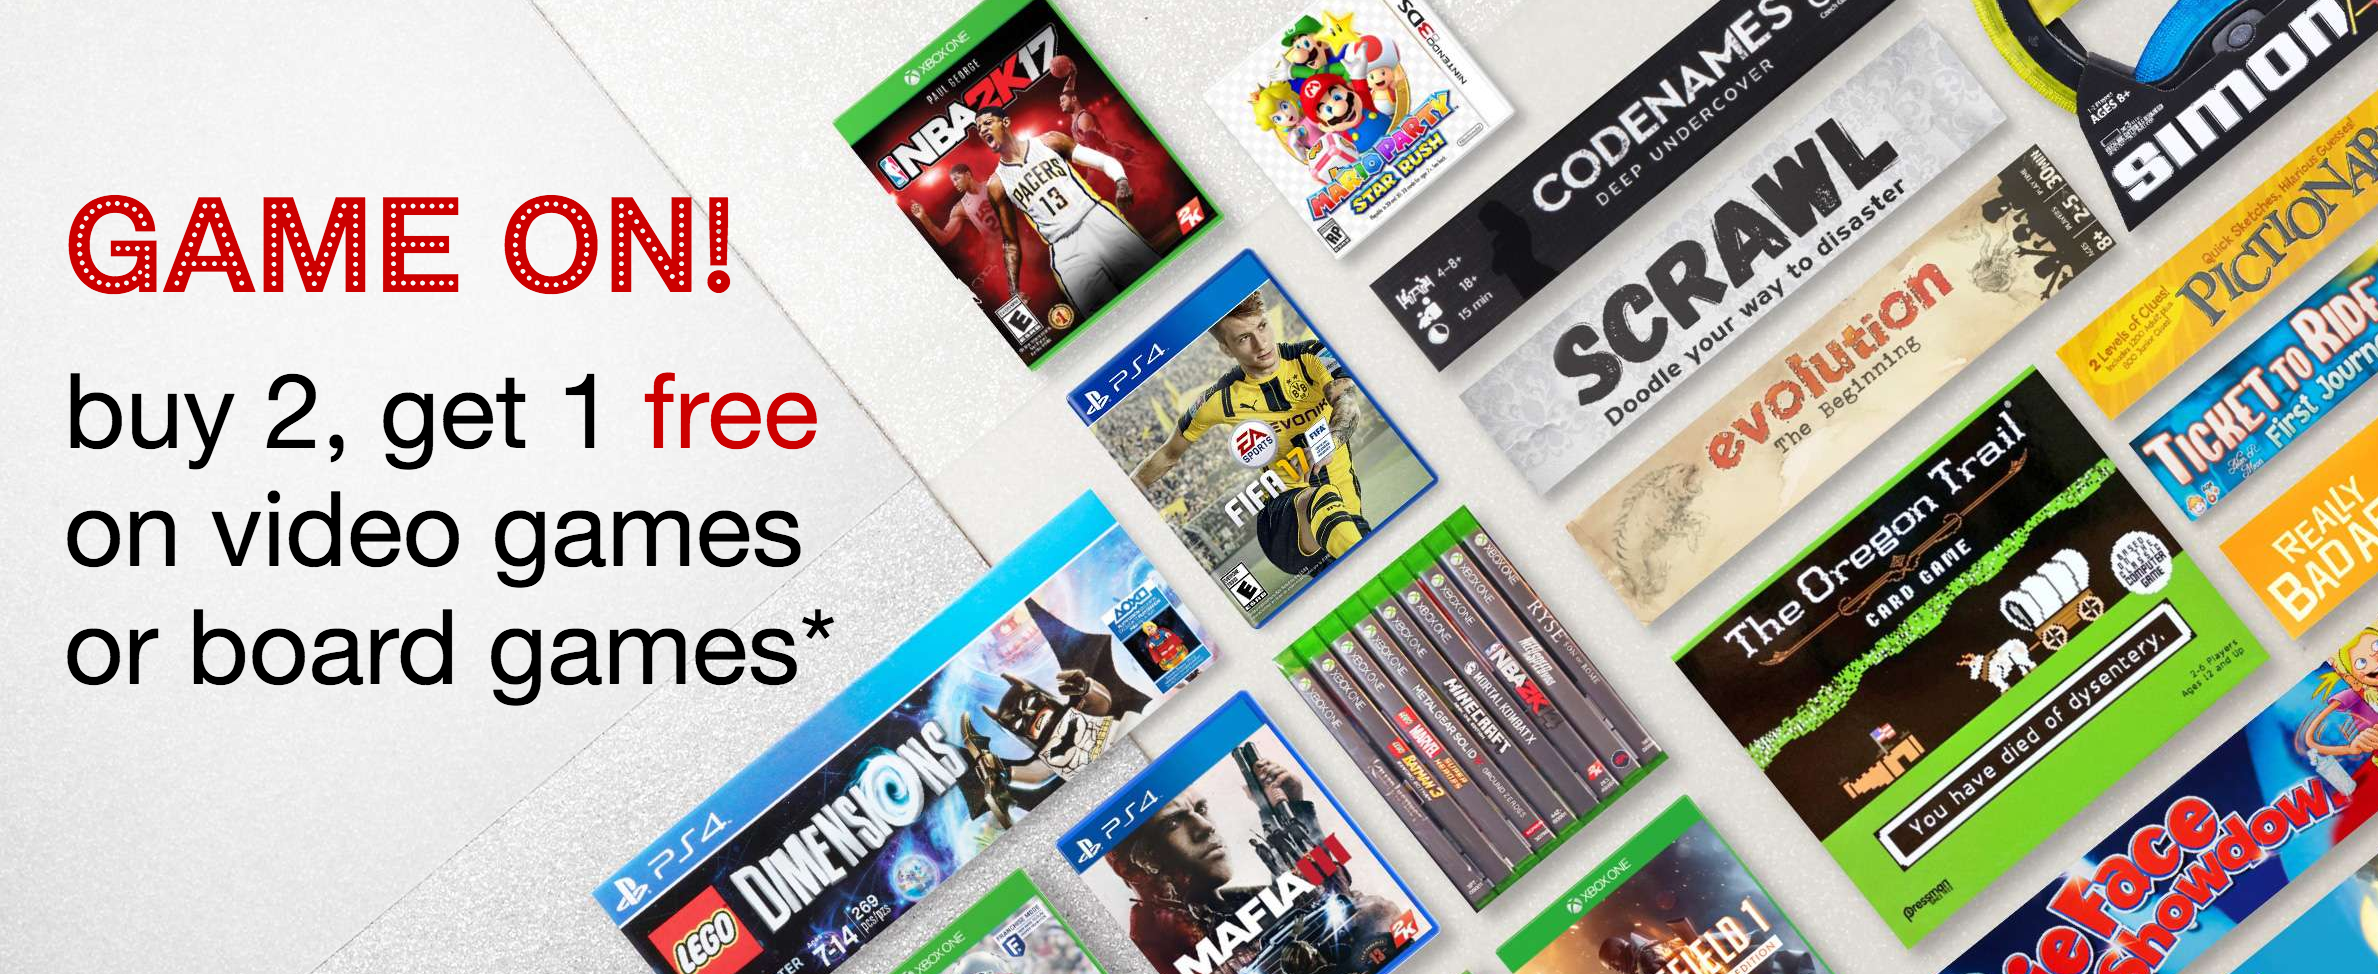 target-game-on-sale-xbox-ps4-nintendo